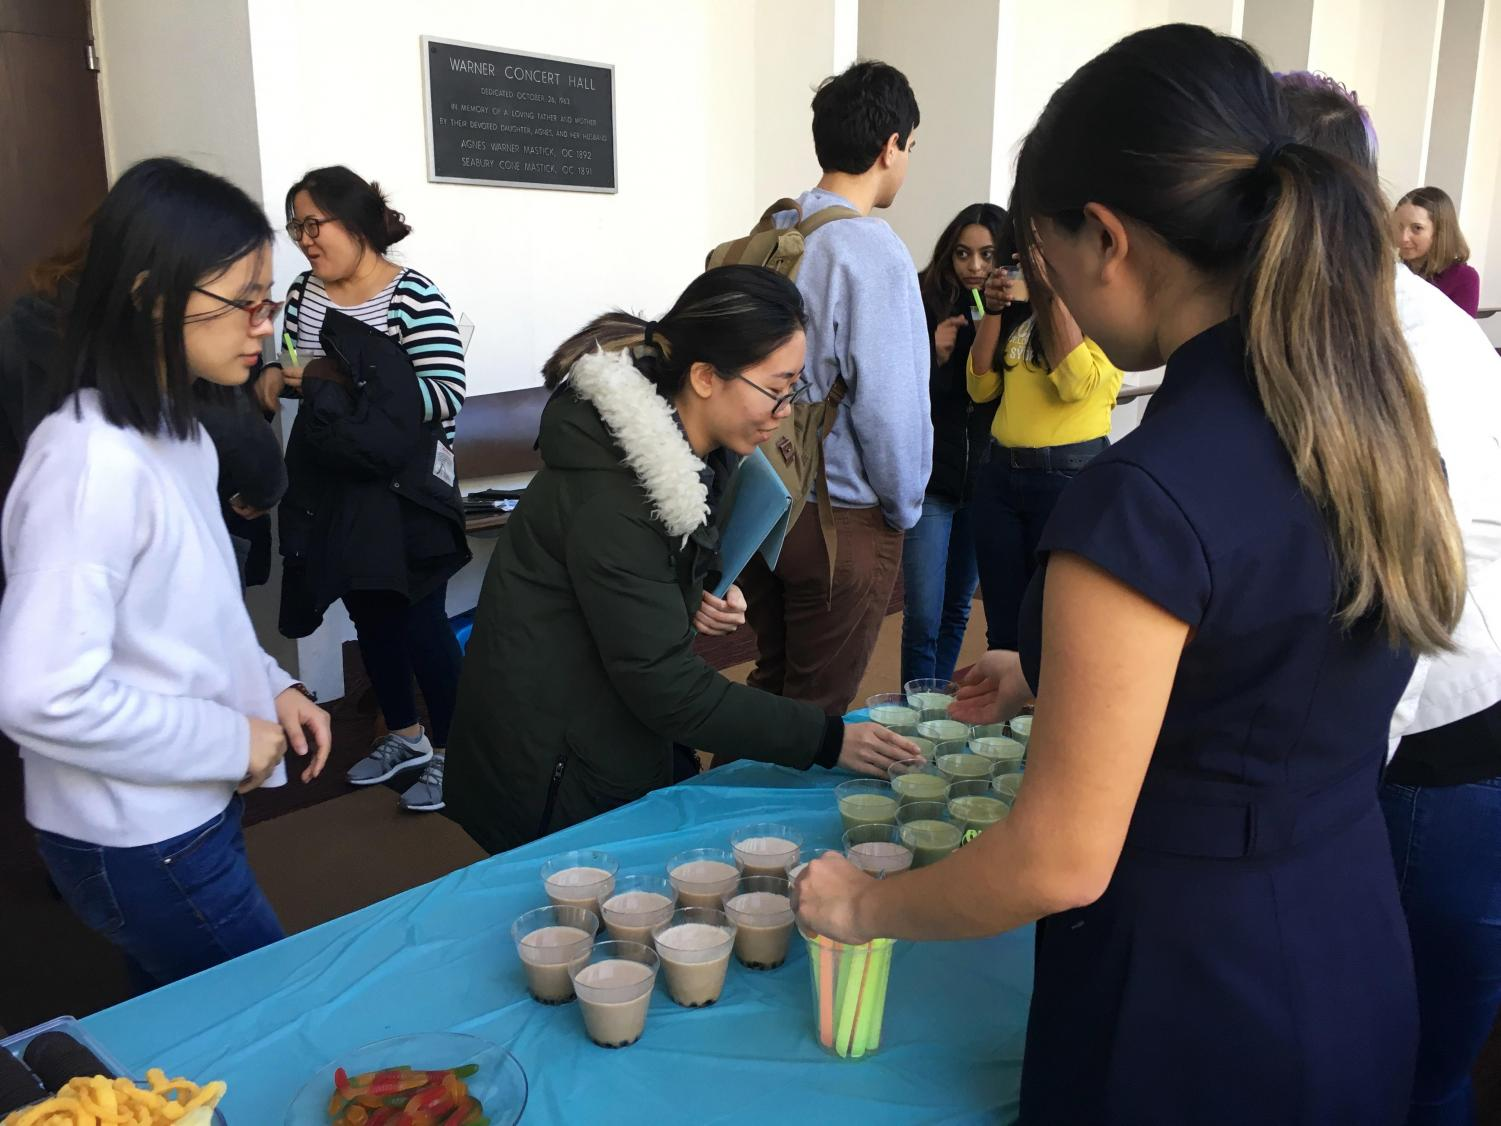 College sophomore Katie Kim passes out boba outside of Warner Concert Hall. Kim runs a small business Bobalin which she started last year after getting an honorable mention and $2,000 in the LaunchU competition.